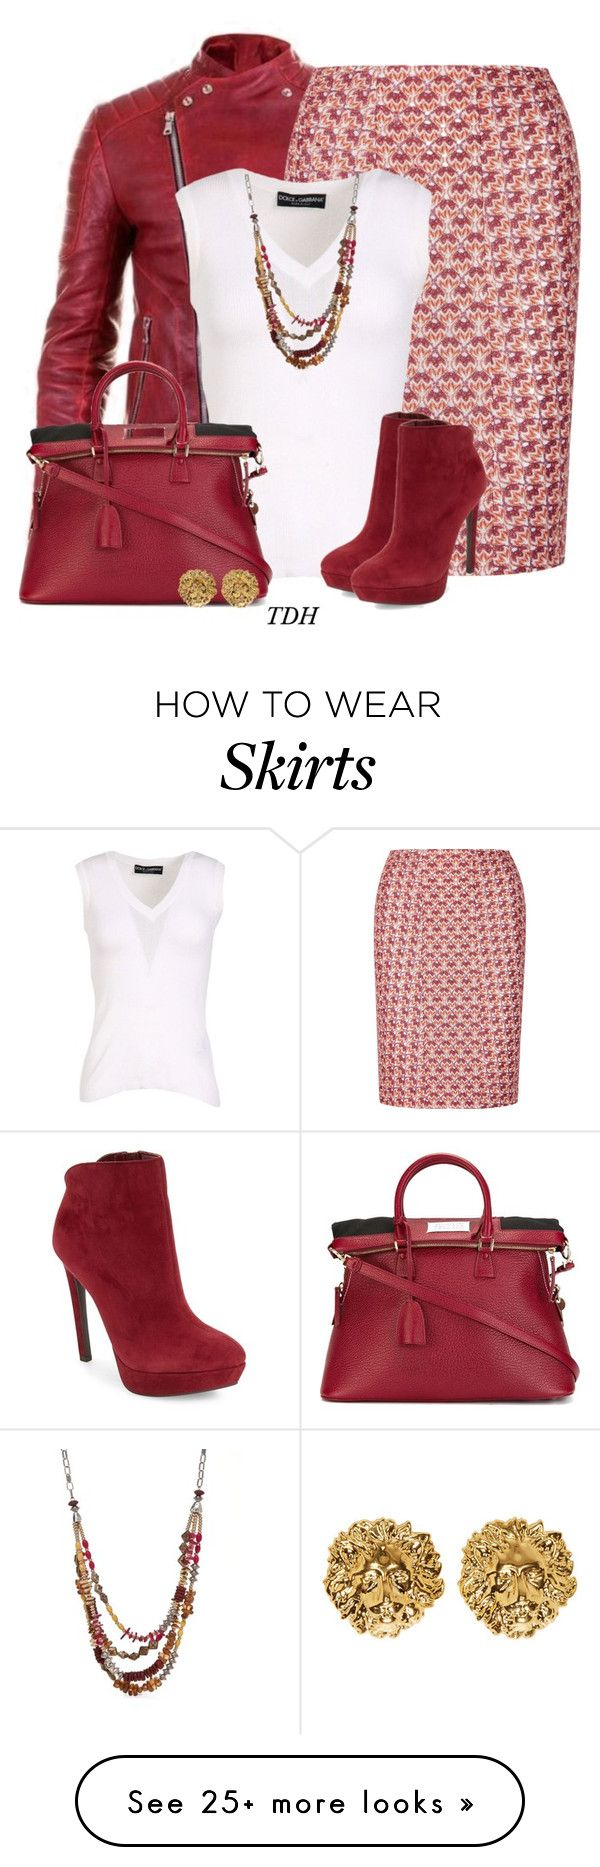 """""""Missoni Knit Skirt"""" by talvadh on Polyvore featuring Balmain, Missoni, Dolce&Gabbana, Ruby Rd., Jessica Simpson, Maison Margiela and Versus"""